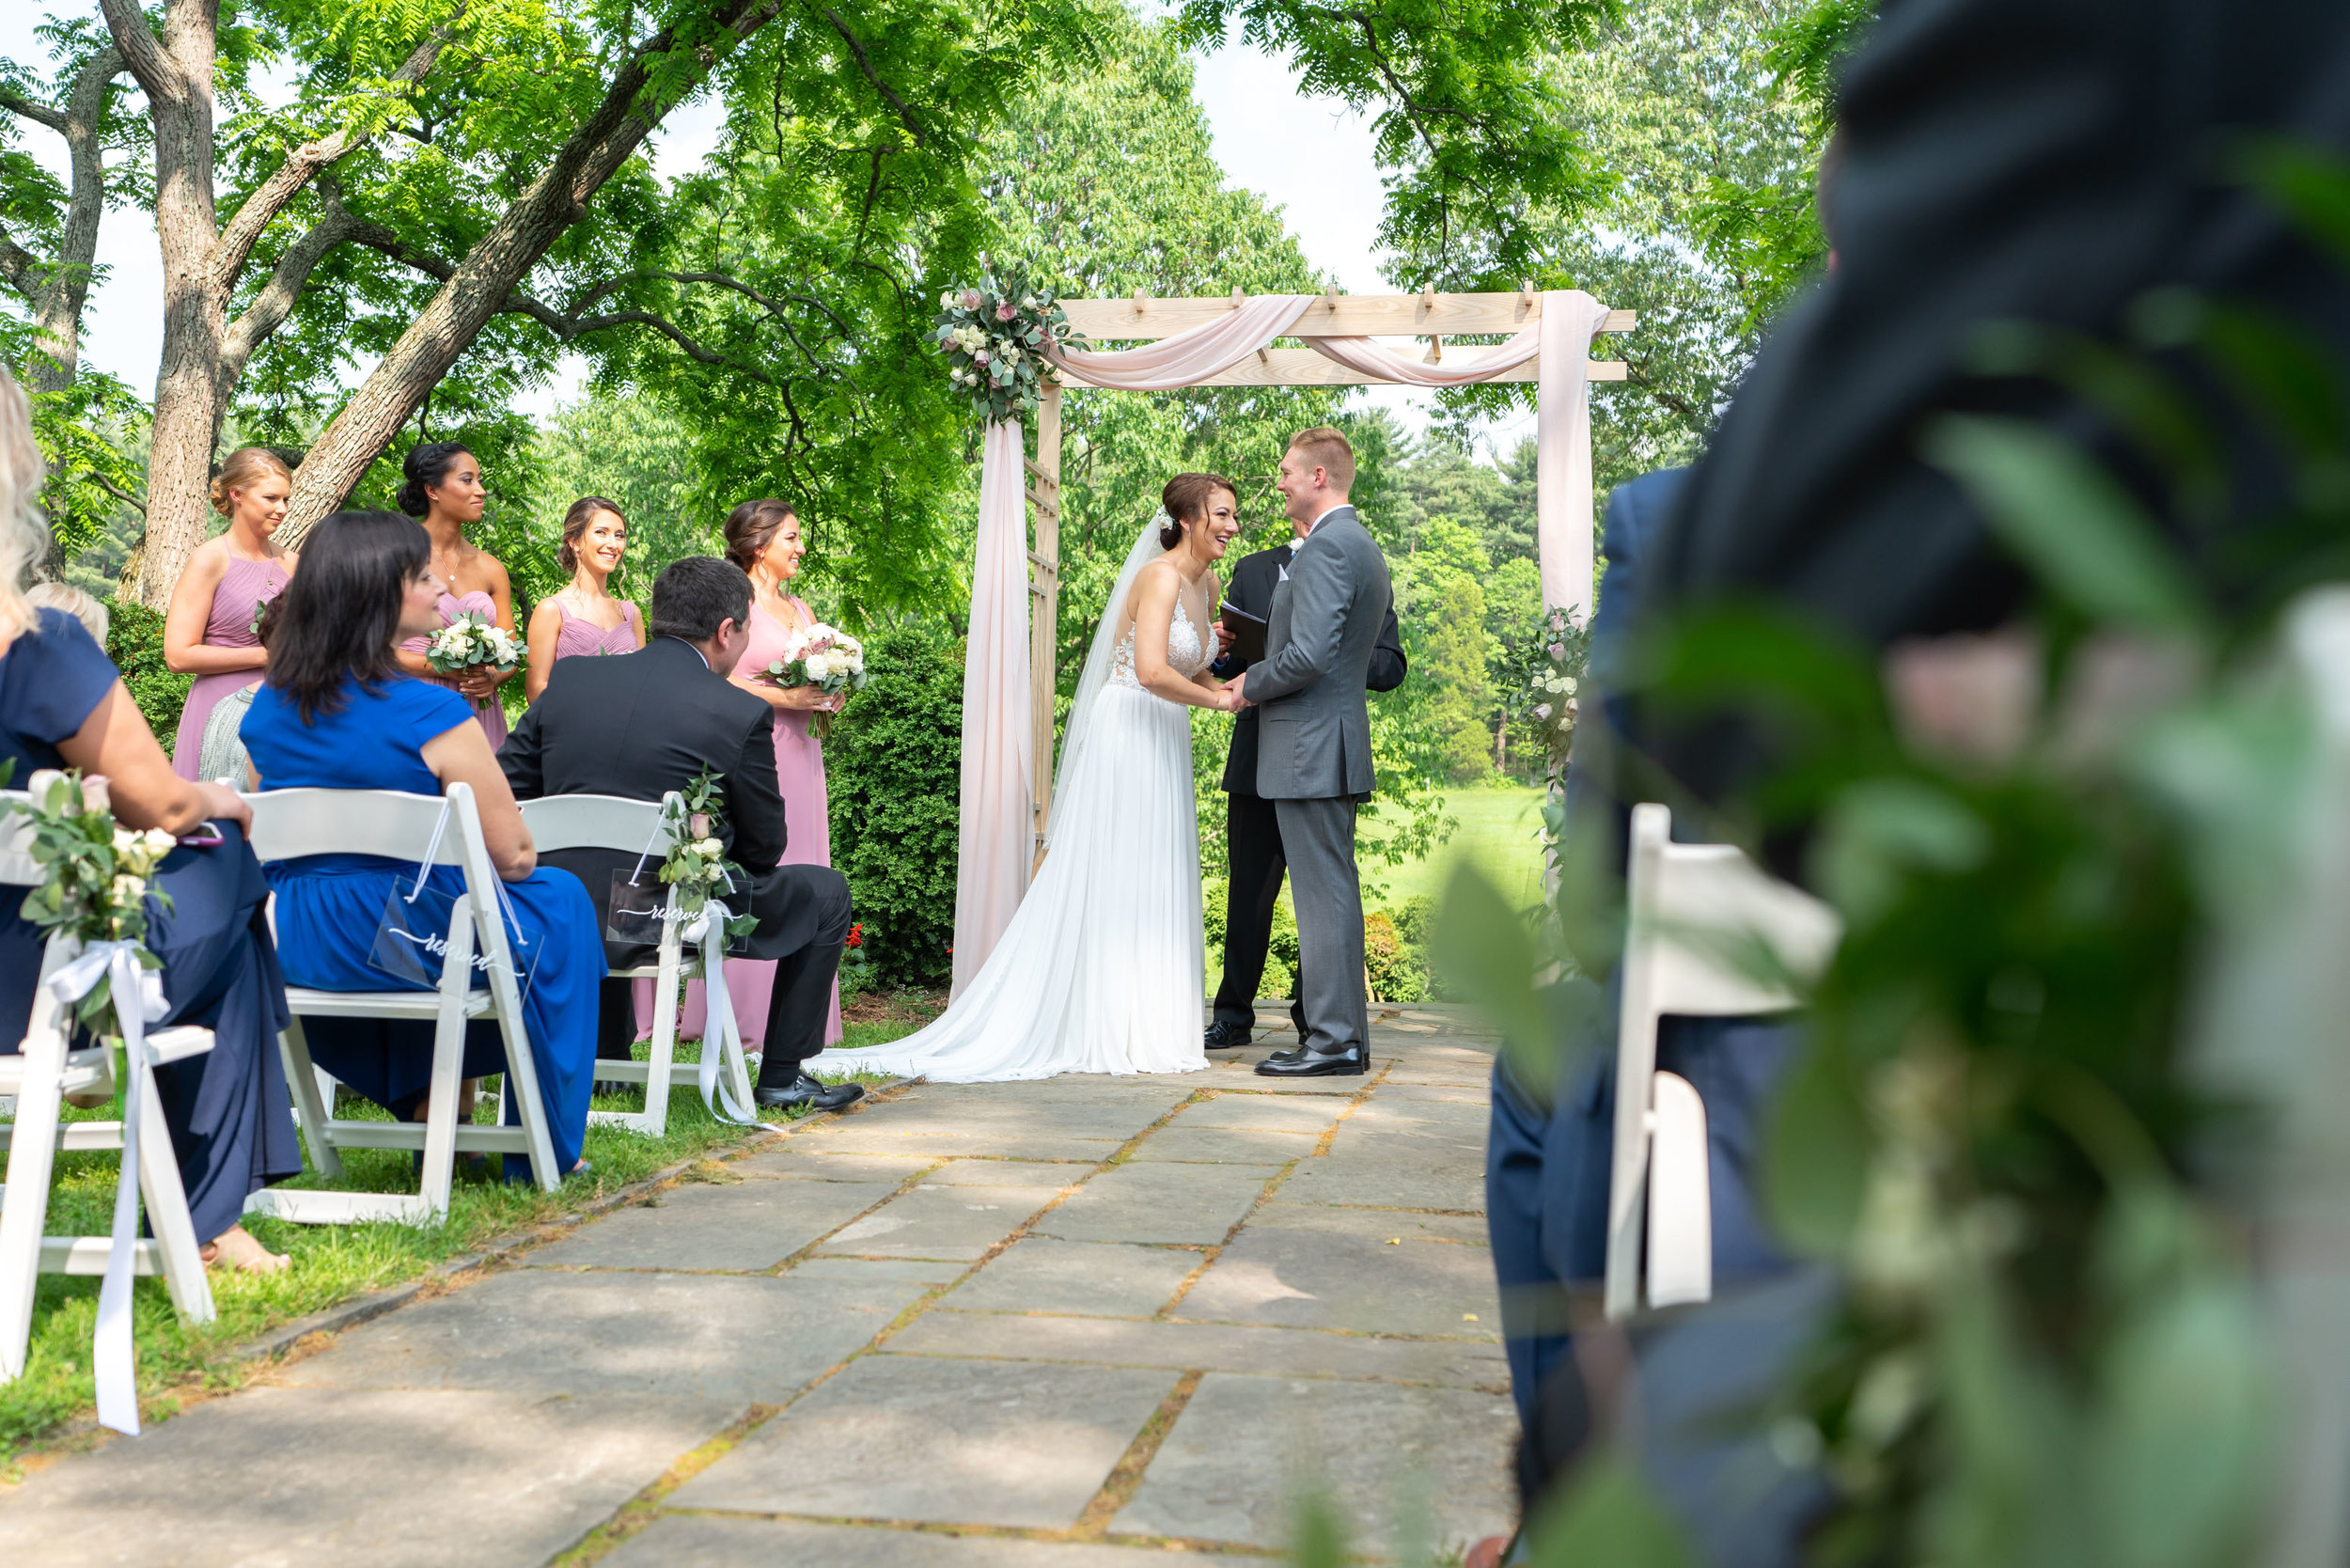 Fun wedding ceremony photography at Glenview Mansion in Rockville Maryland